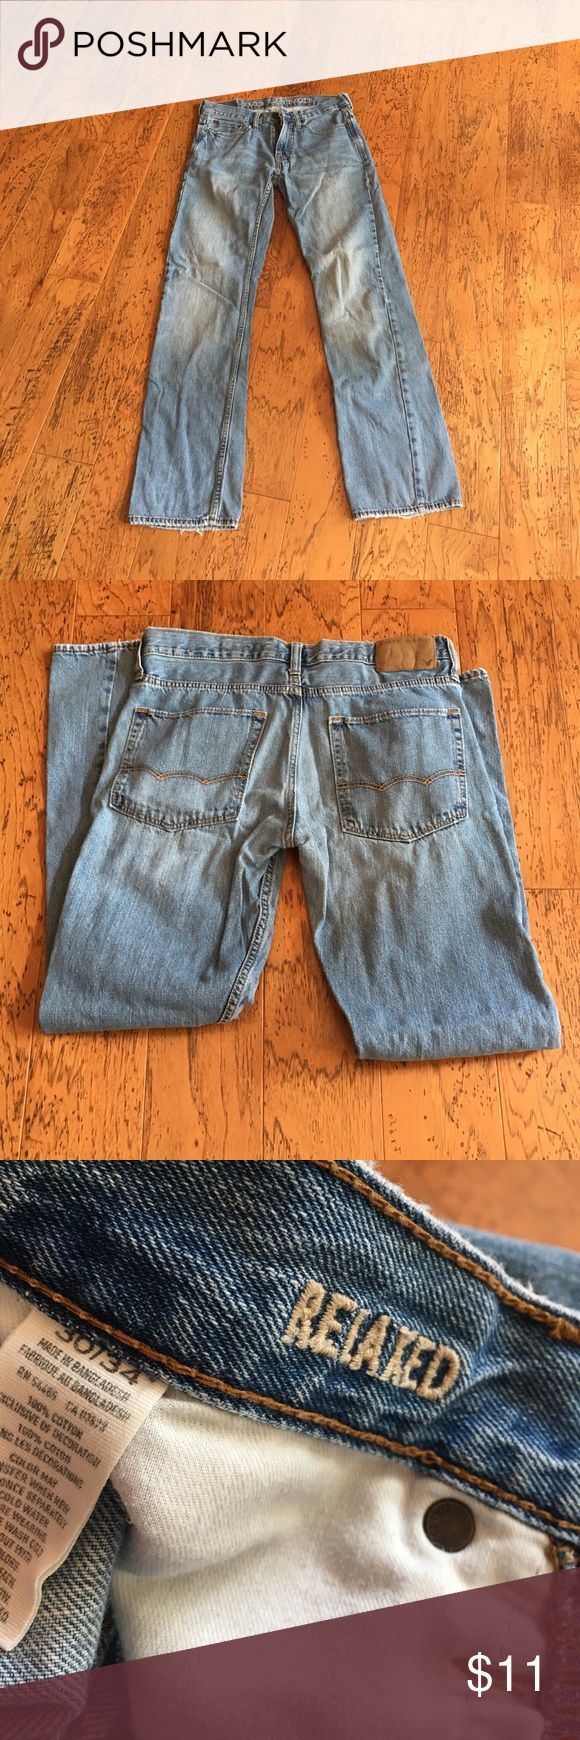 American Eagle Men's Jeans- Relaxed Fit In great condition, relaxed fit- Smoke free home American Eagle Outfitters Jeans Relaxed